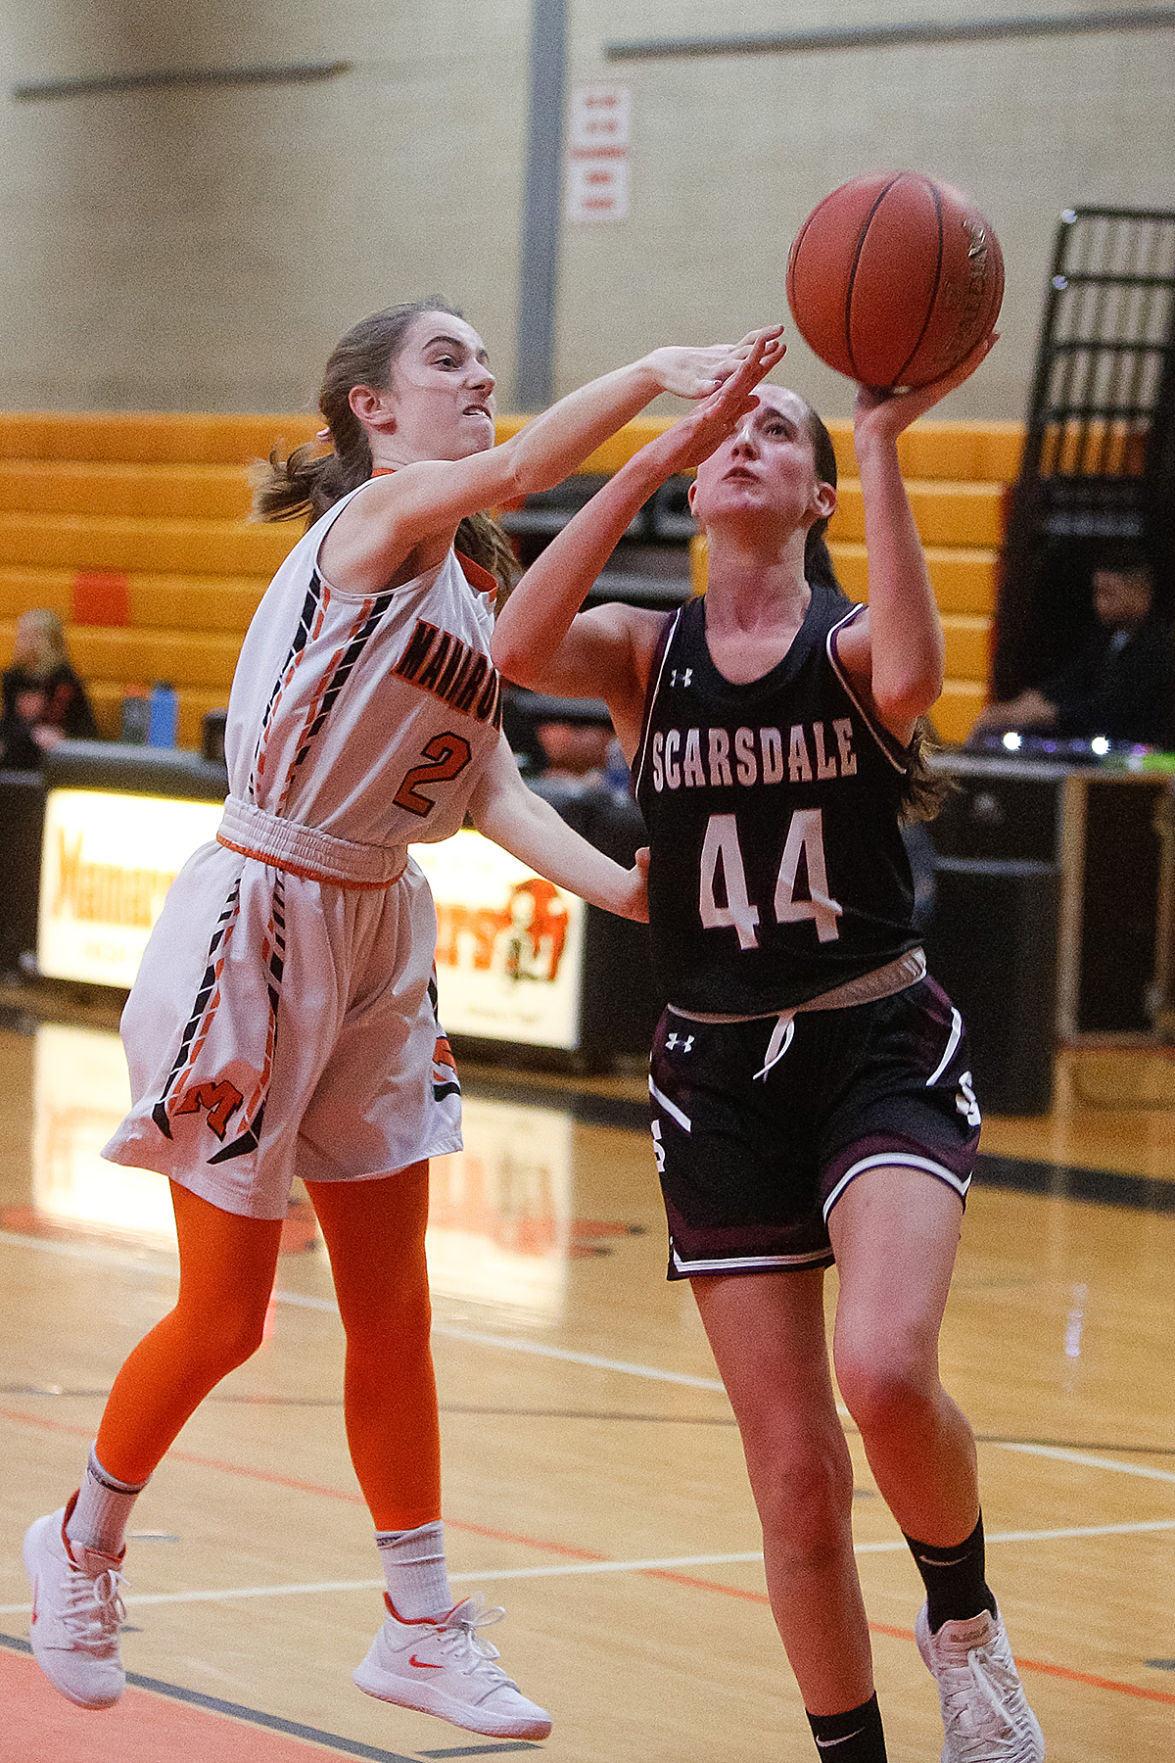 Scarsdale girls basketball